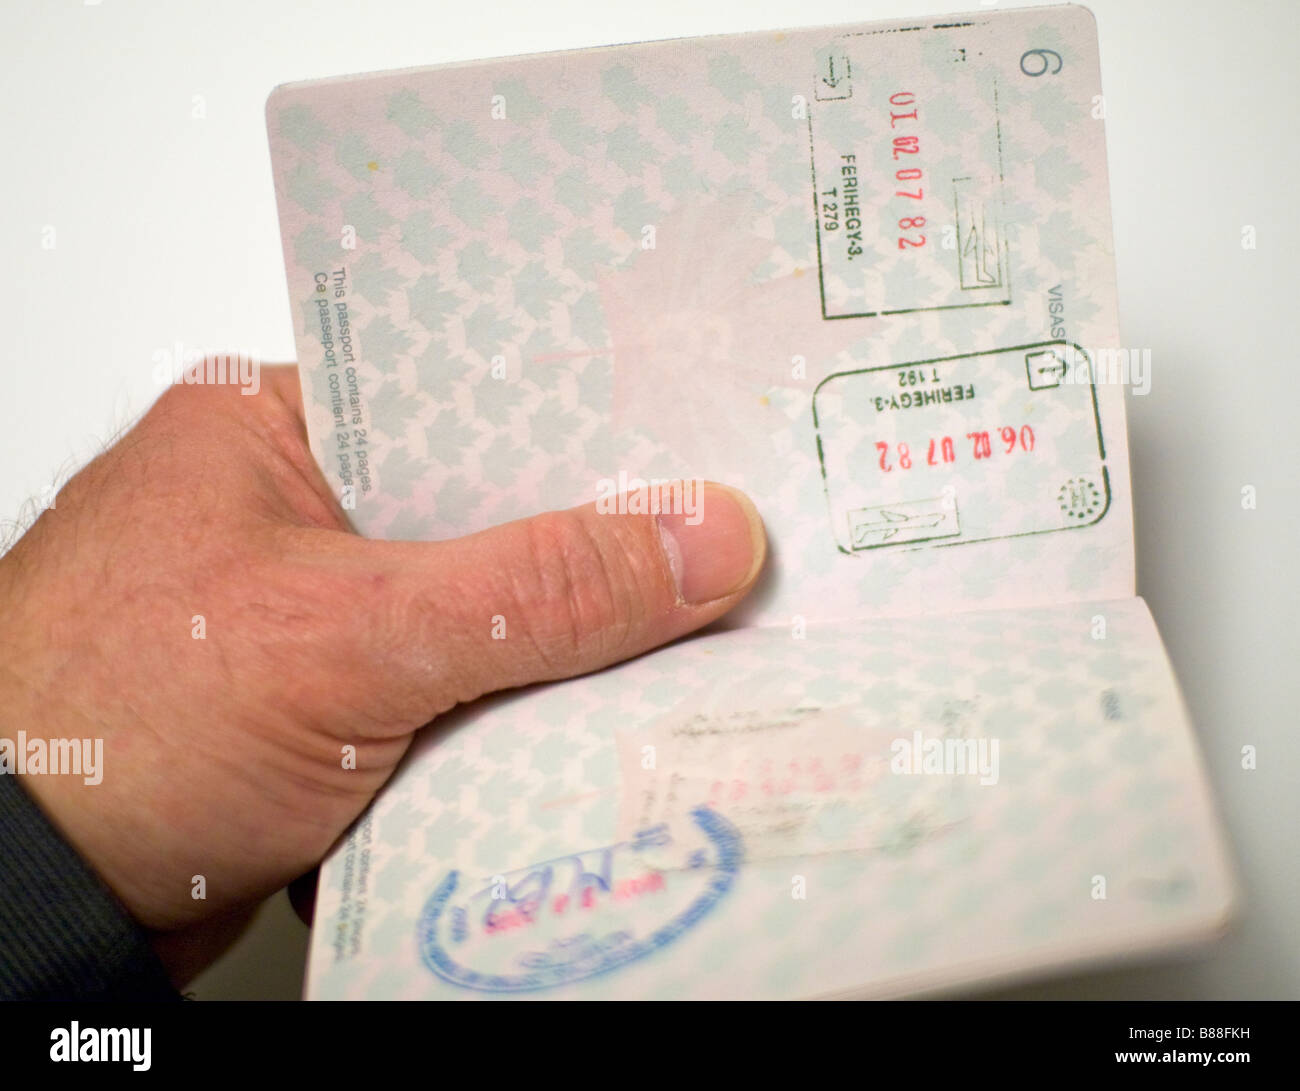 Canadian passport opened for inspection - Stock Image